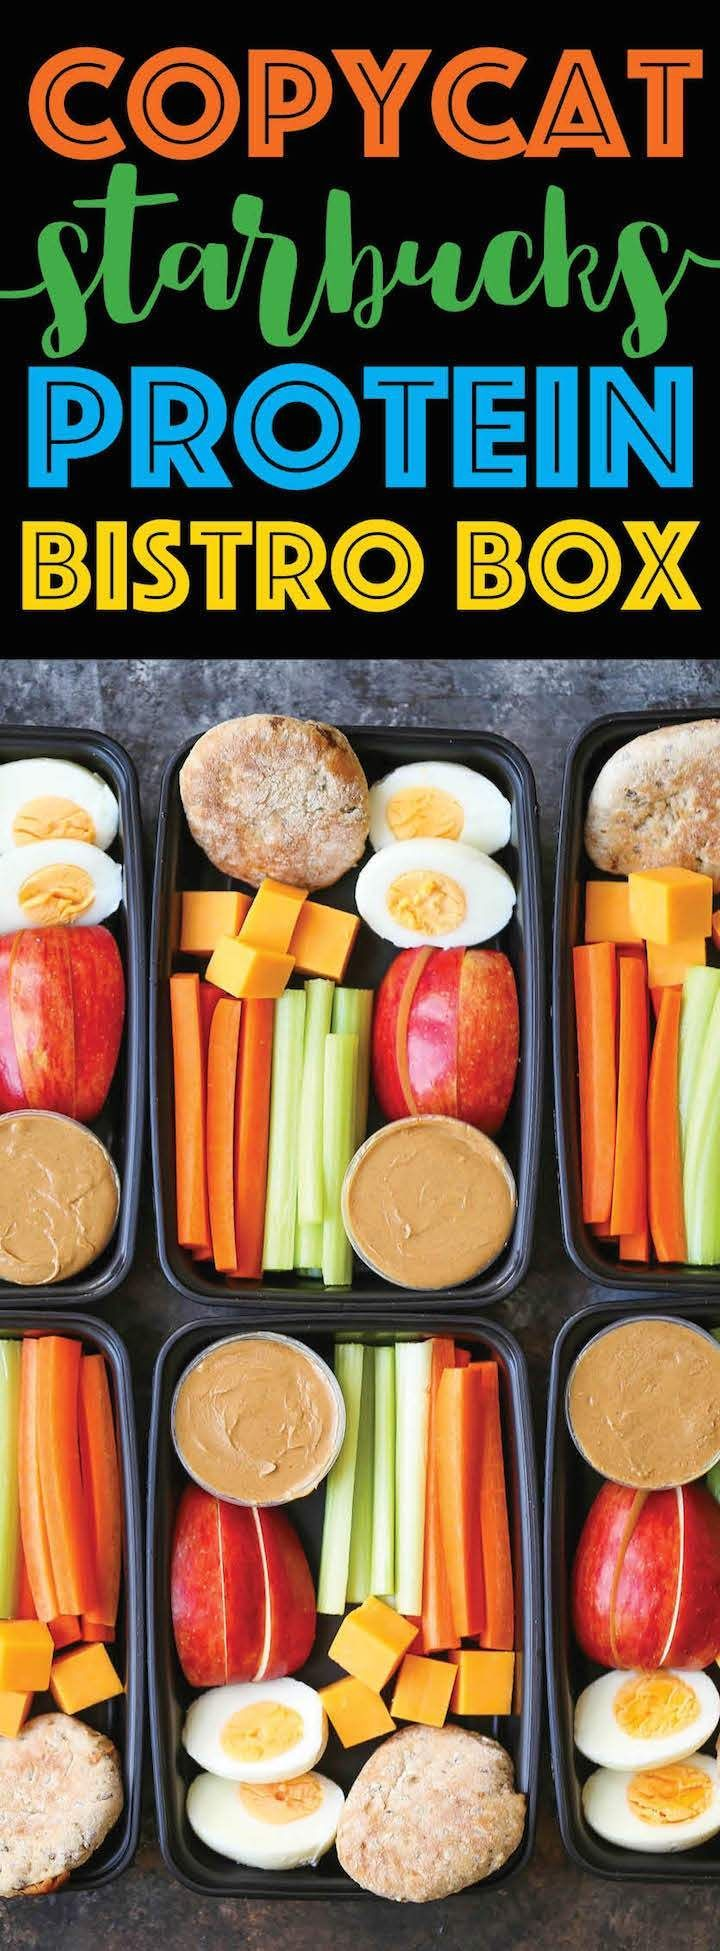 Copycat Starbucks Protein Bistro Boxed lunch. Great idea for travel & road trips...even the first meal at the airport. Meal ideas / lunch recipes.